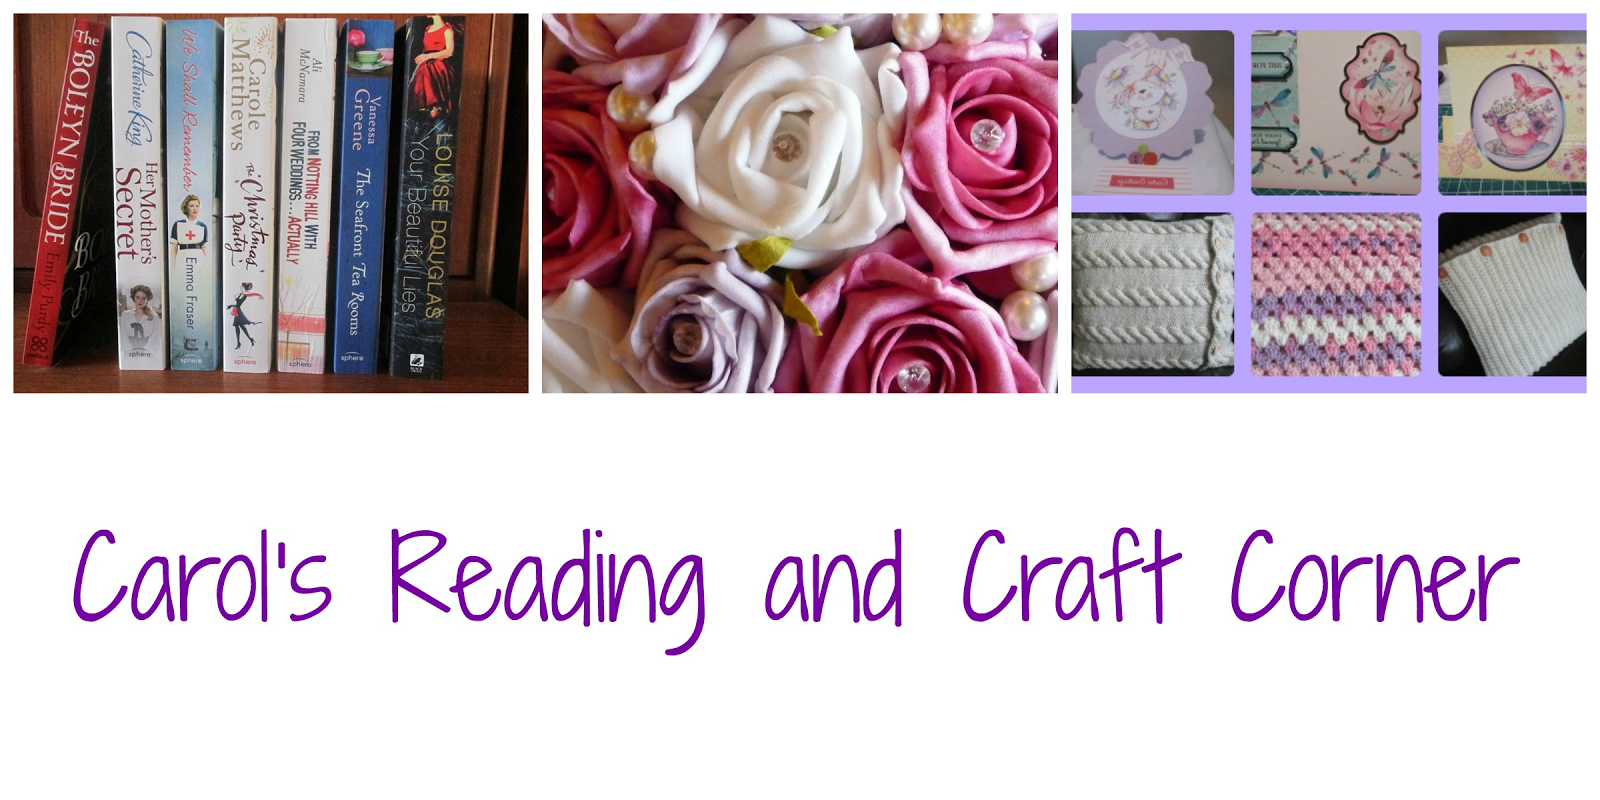 Carol's Reading and Craft Corner